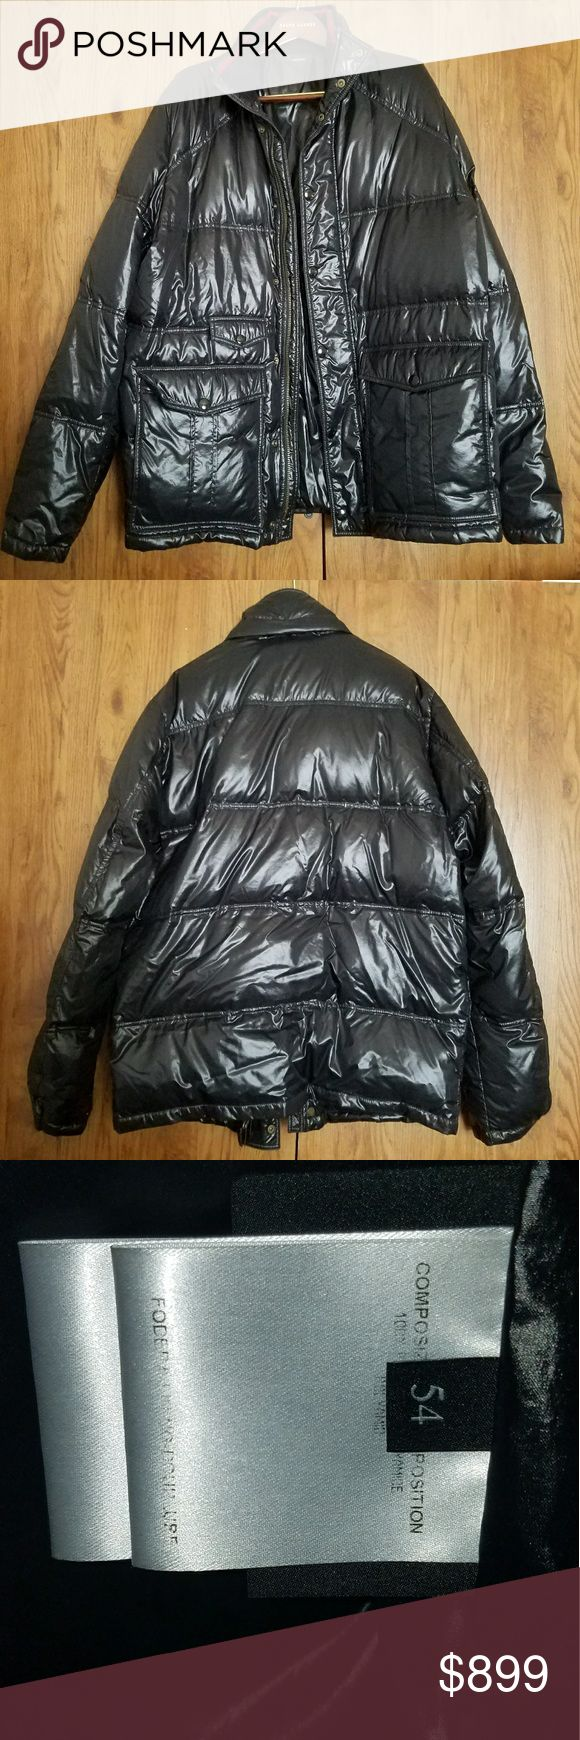 GUCCI MEN'S PUFFER HOODED COAT This men's puffer coat from Gucci is PERFECT for the cooler months! Gucci size 54 which fits like an XL. Shell is a shiny Polyamide, and the filling is responsibly sourced down feathers. Lightweight, but still very warm. Worn just twice and still in like new condition! Gucci Jackets & Coats Puffers